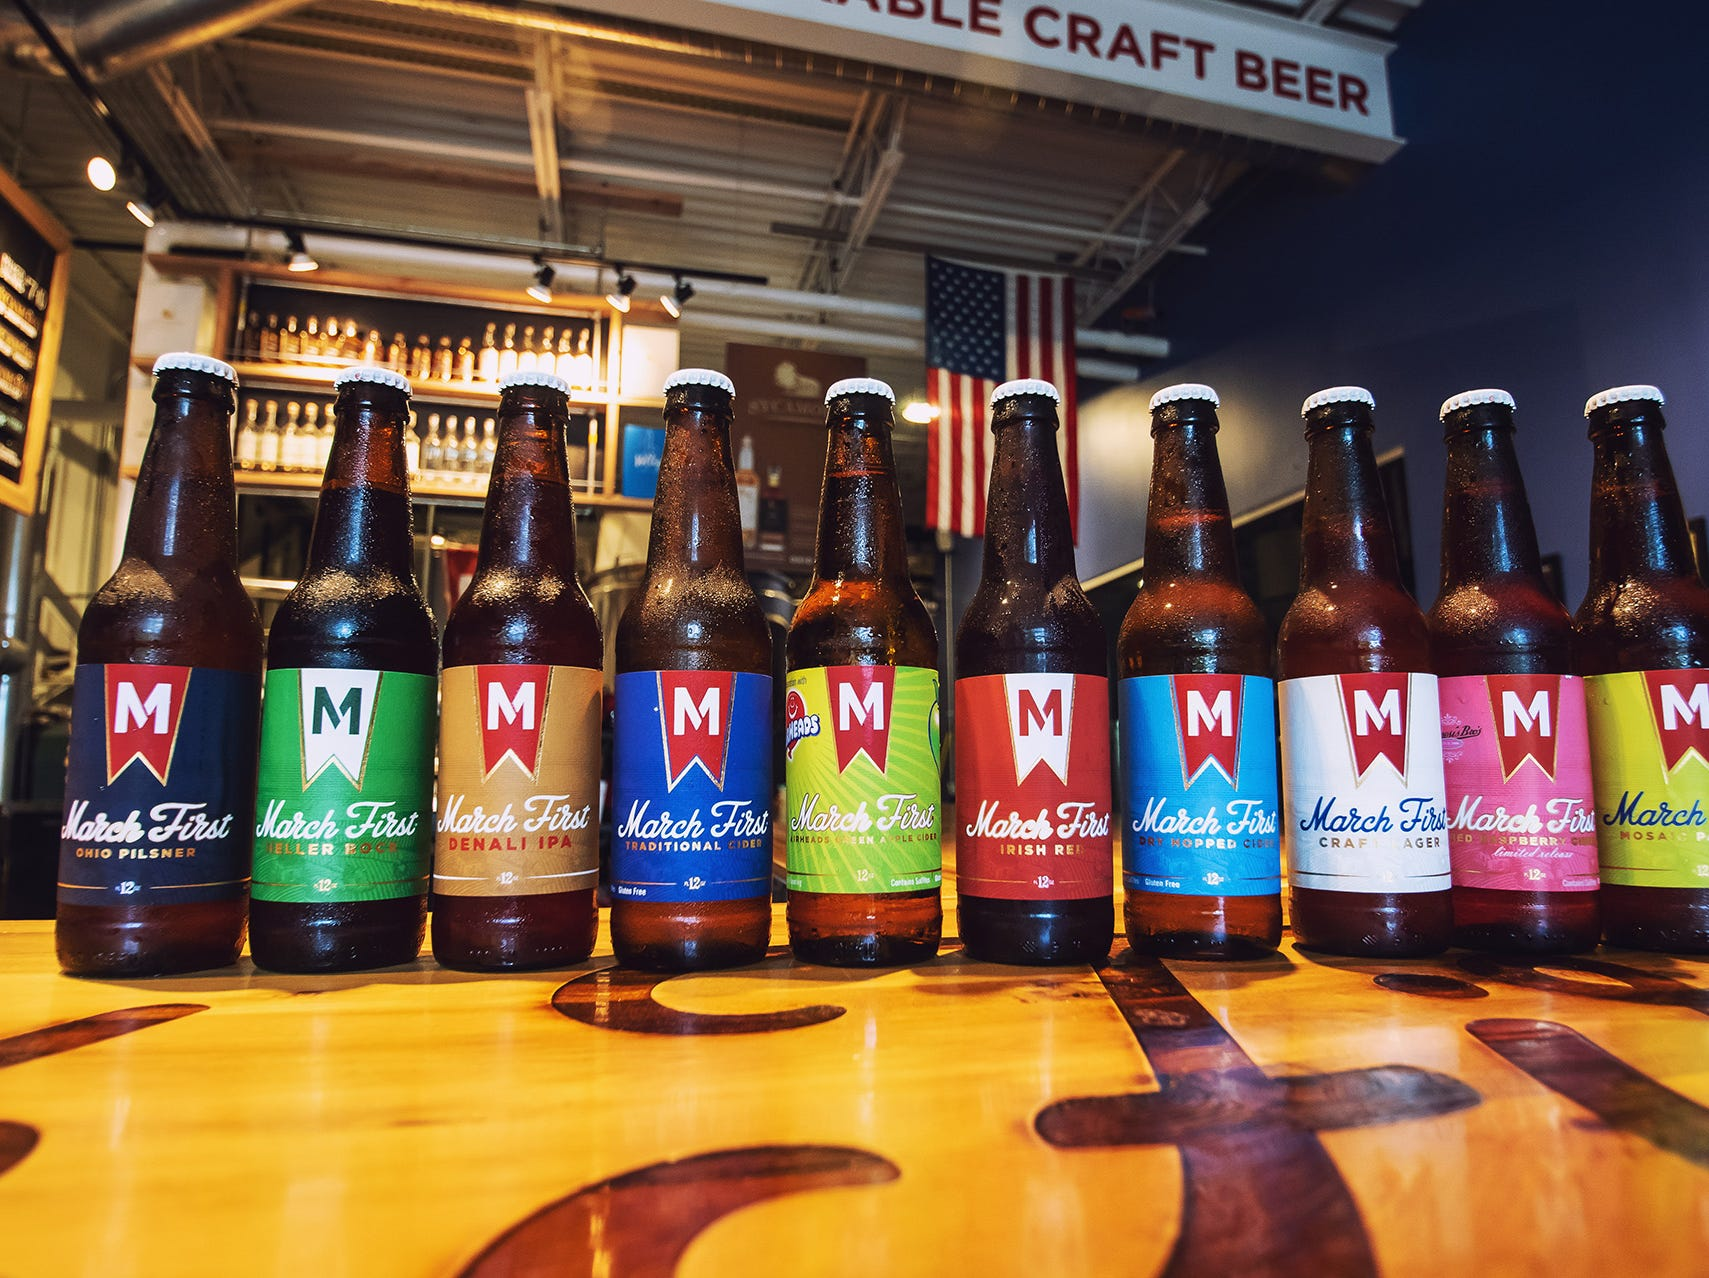 March First Brewing's bottled beer collection.